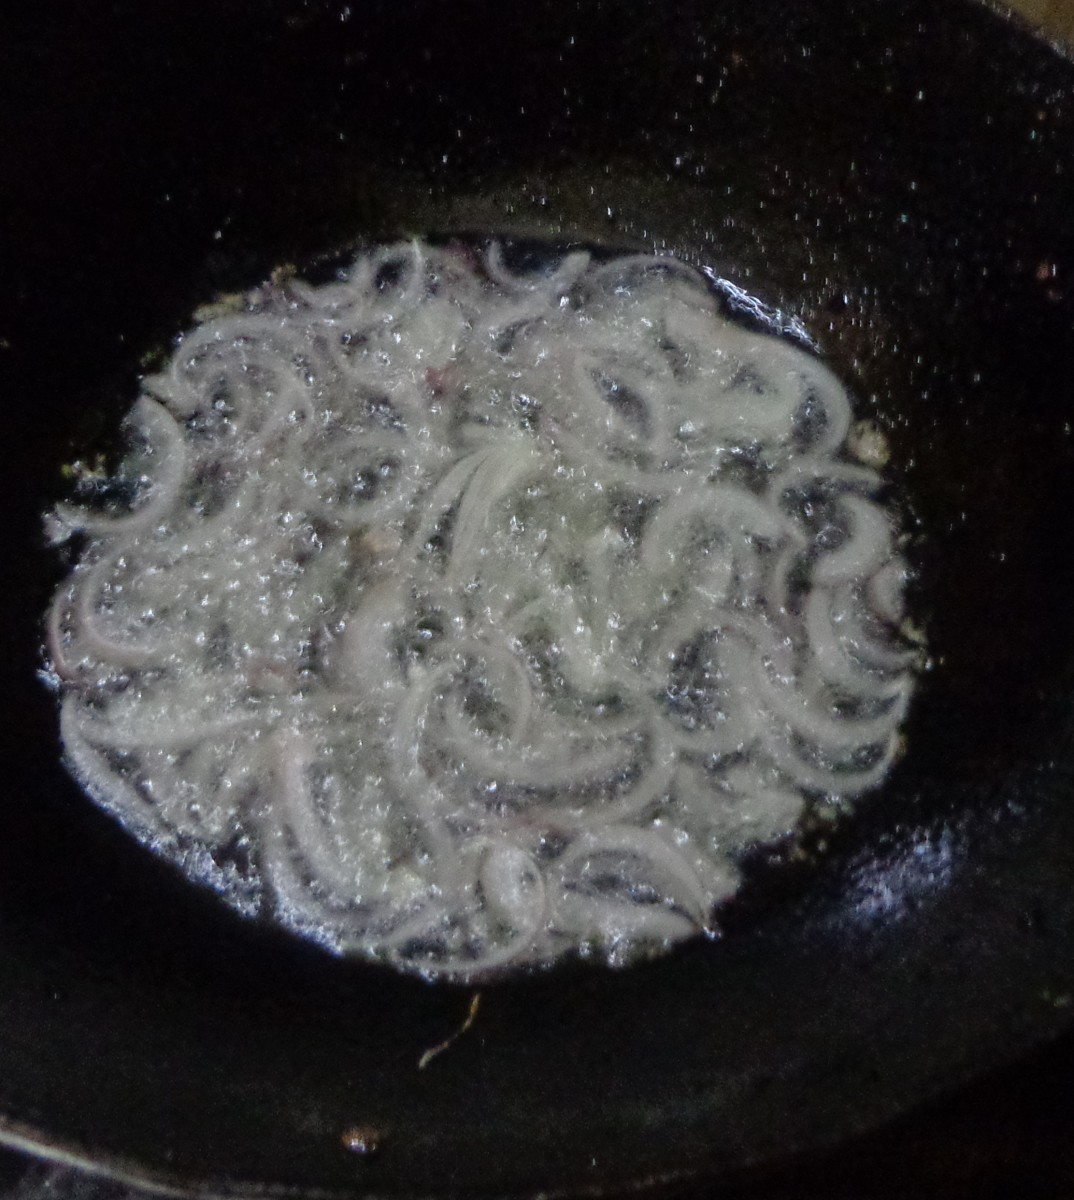 Onions getting fried in the oil